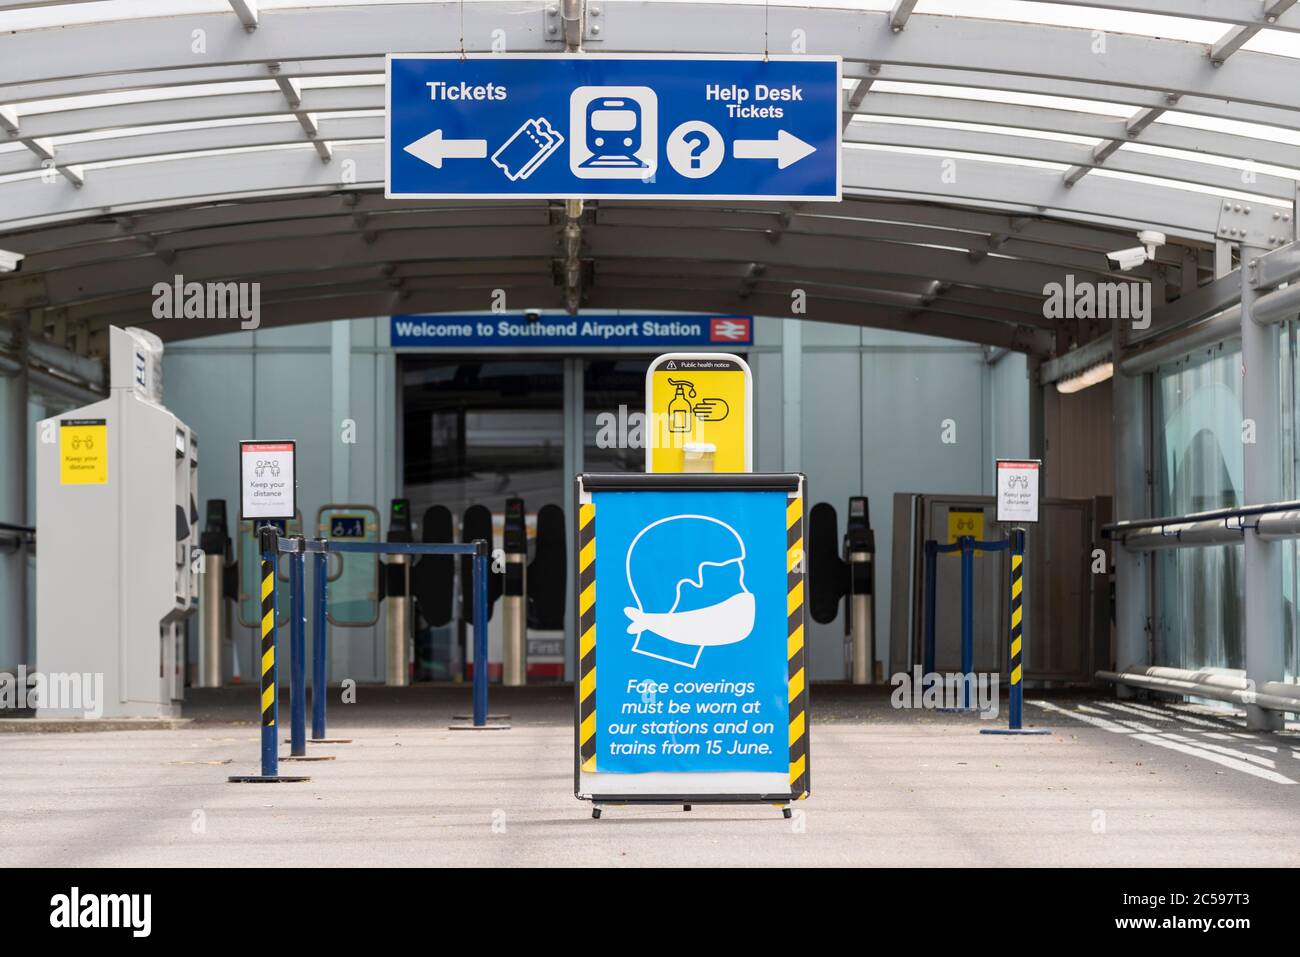 Entrance to Southend Airport railway station with signs related to COVID-19 Coronavirus health pandemic. Face coverings must be worn. Hand sanitiser Stock Photo